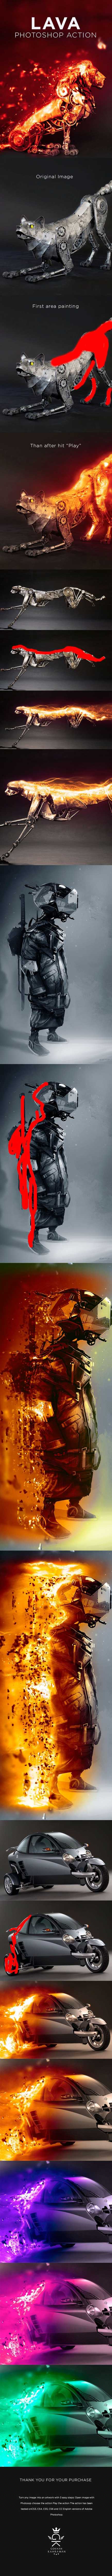 Lava #Photoshop Action - Photo Effects Actions Download here:  https://graphicriver.net/item/lava-photoshop-action/19397875?ref=alena994